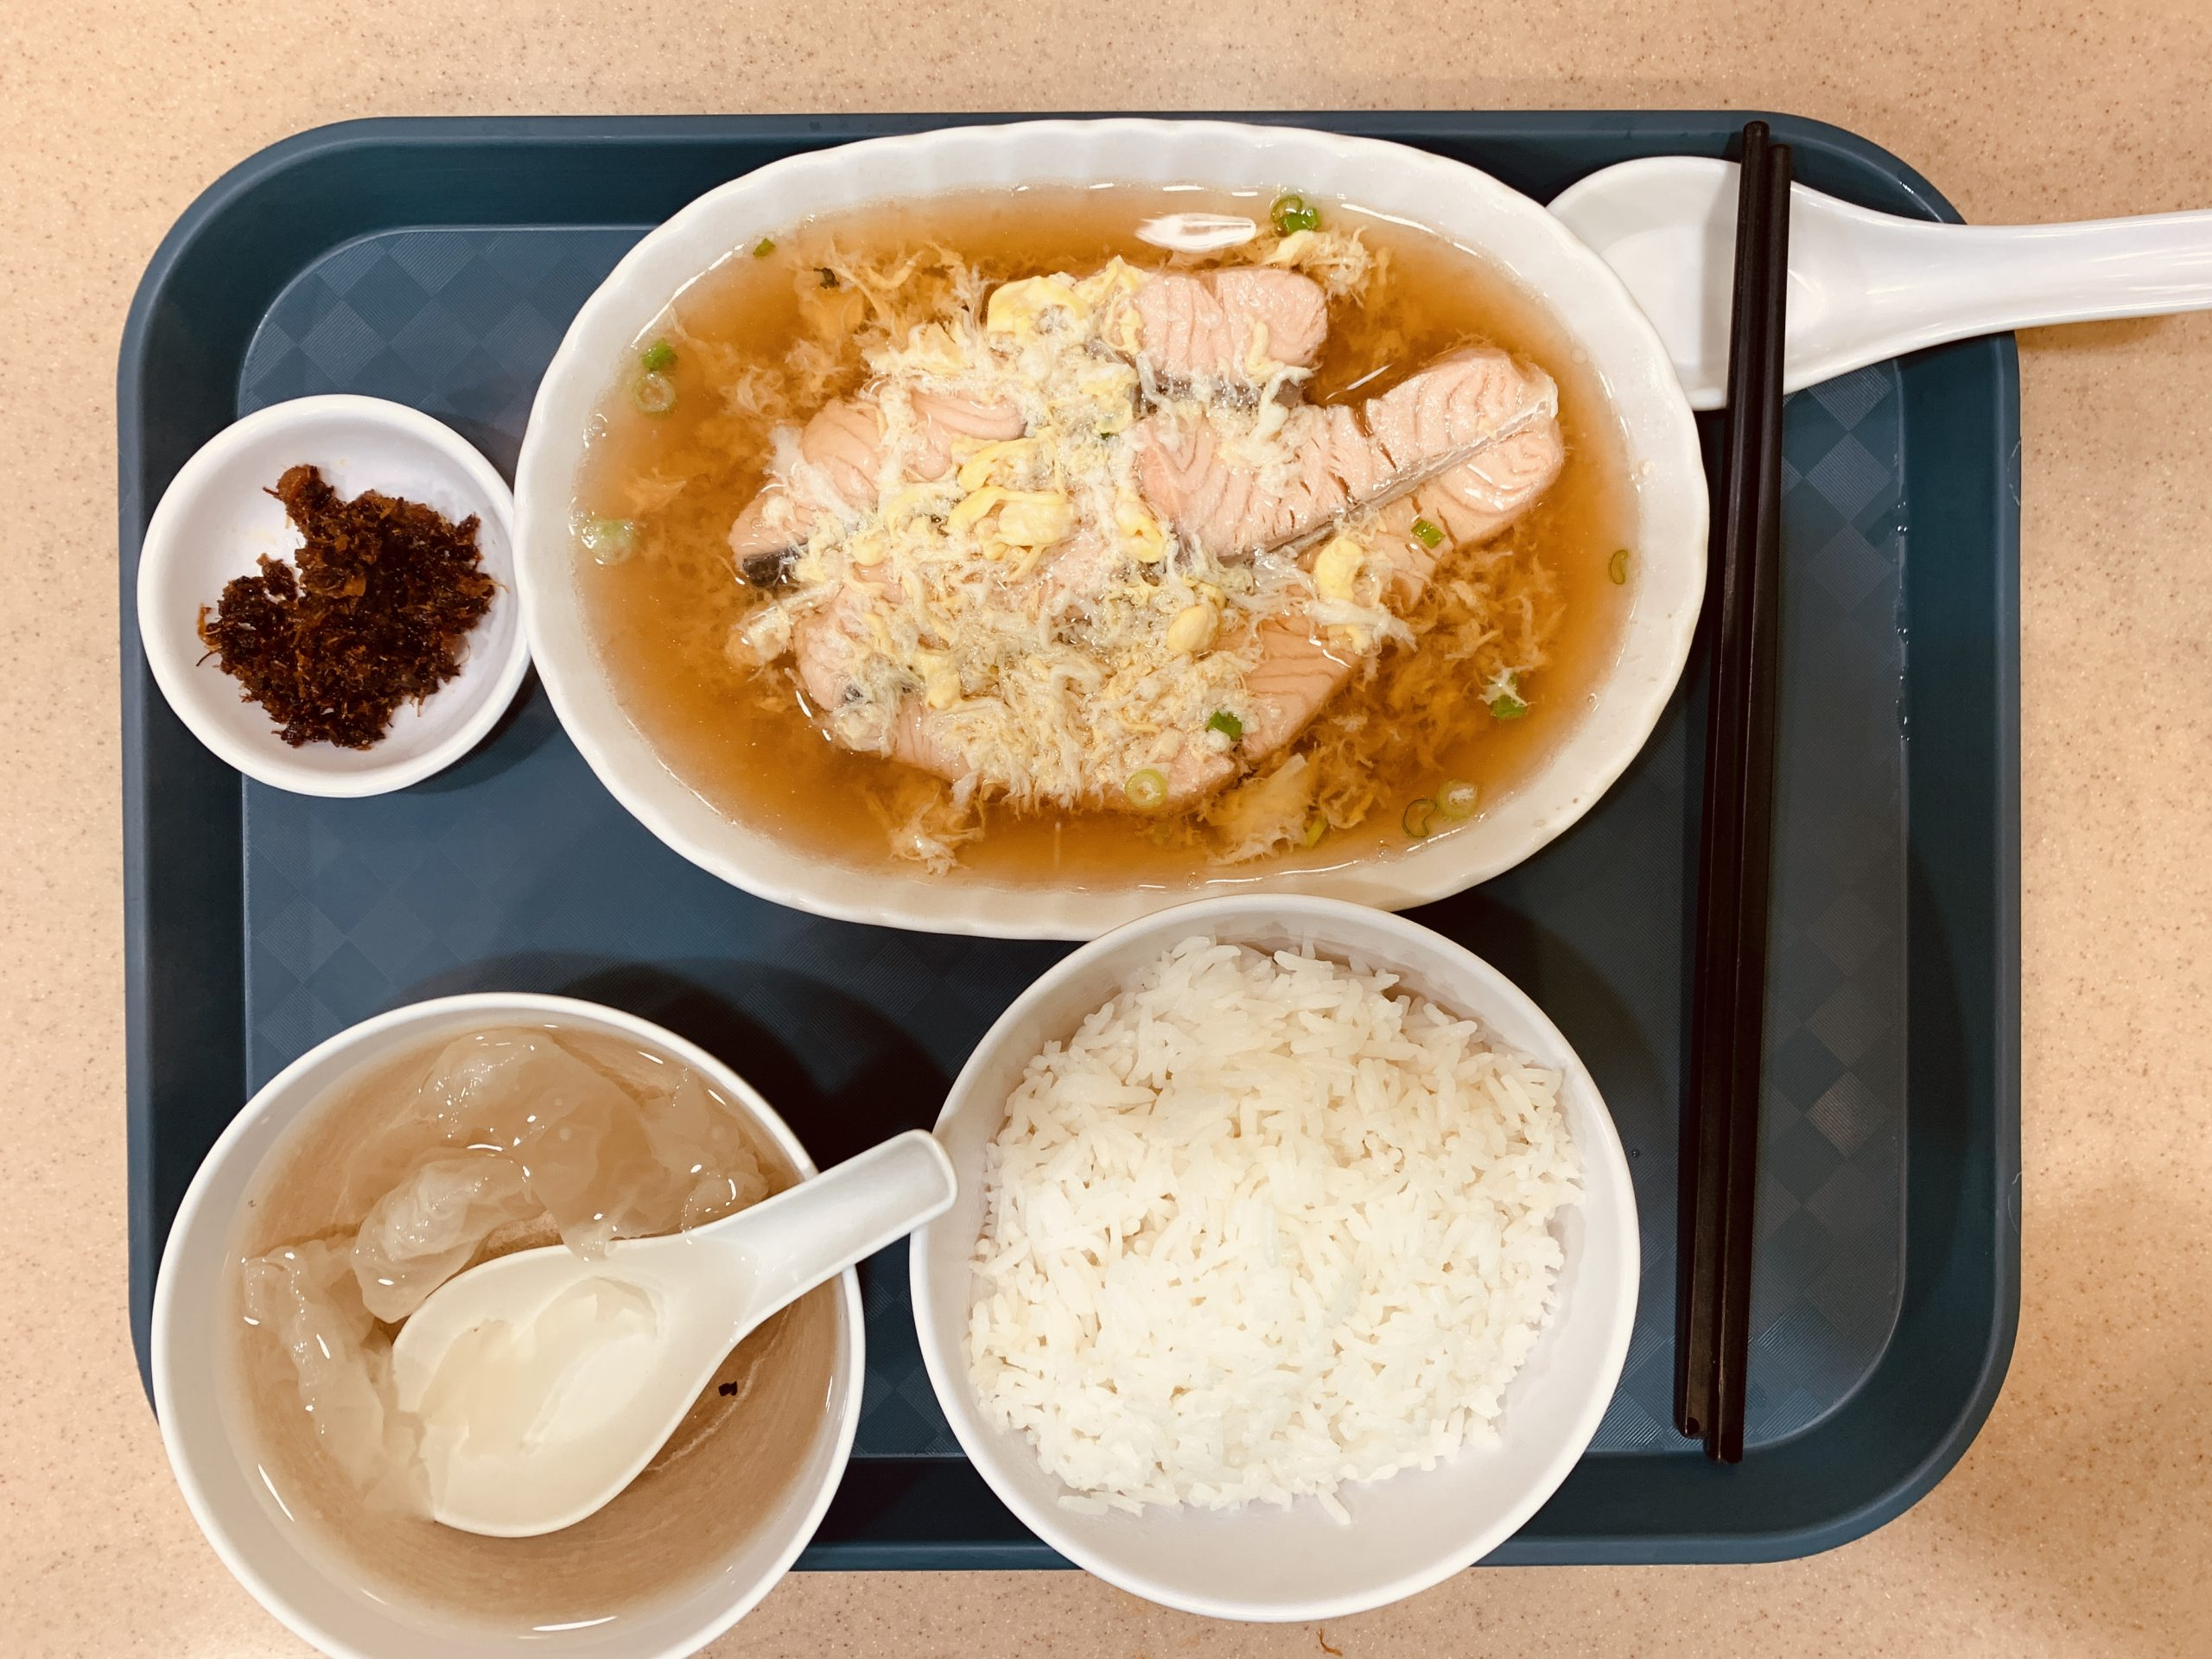 Rabbit Brand Seafood Delicacies - Set W Norway Salmon Fish with Japanese Stock (served with rice)